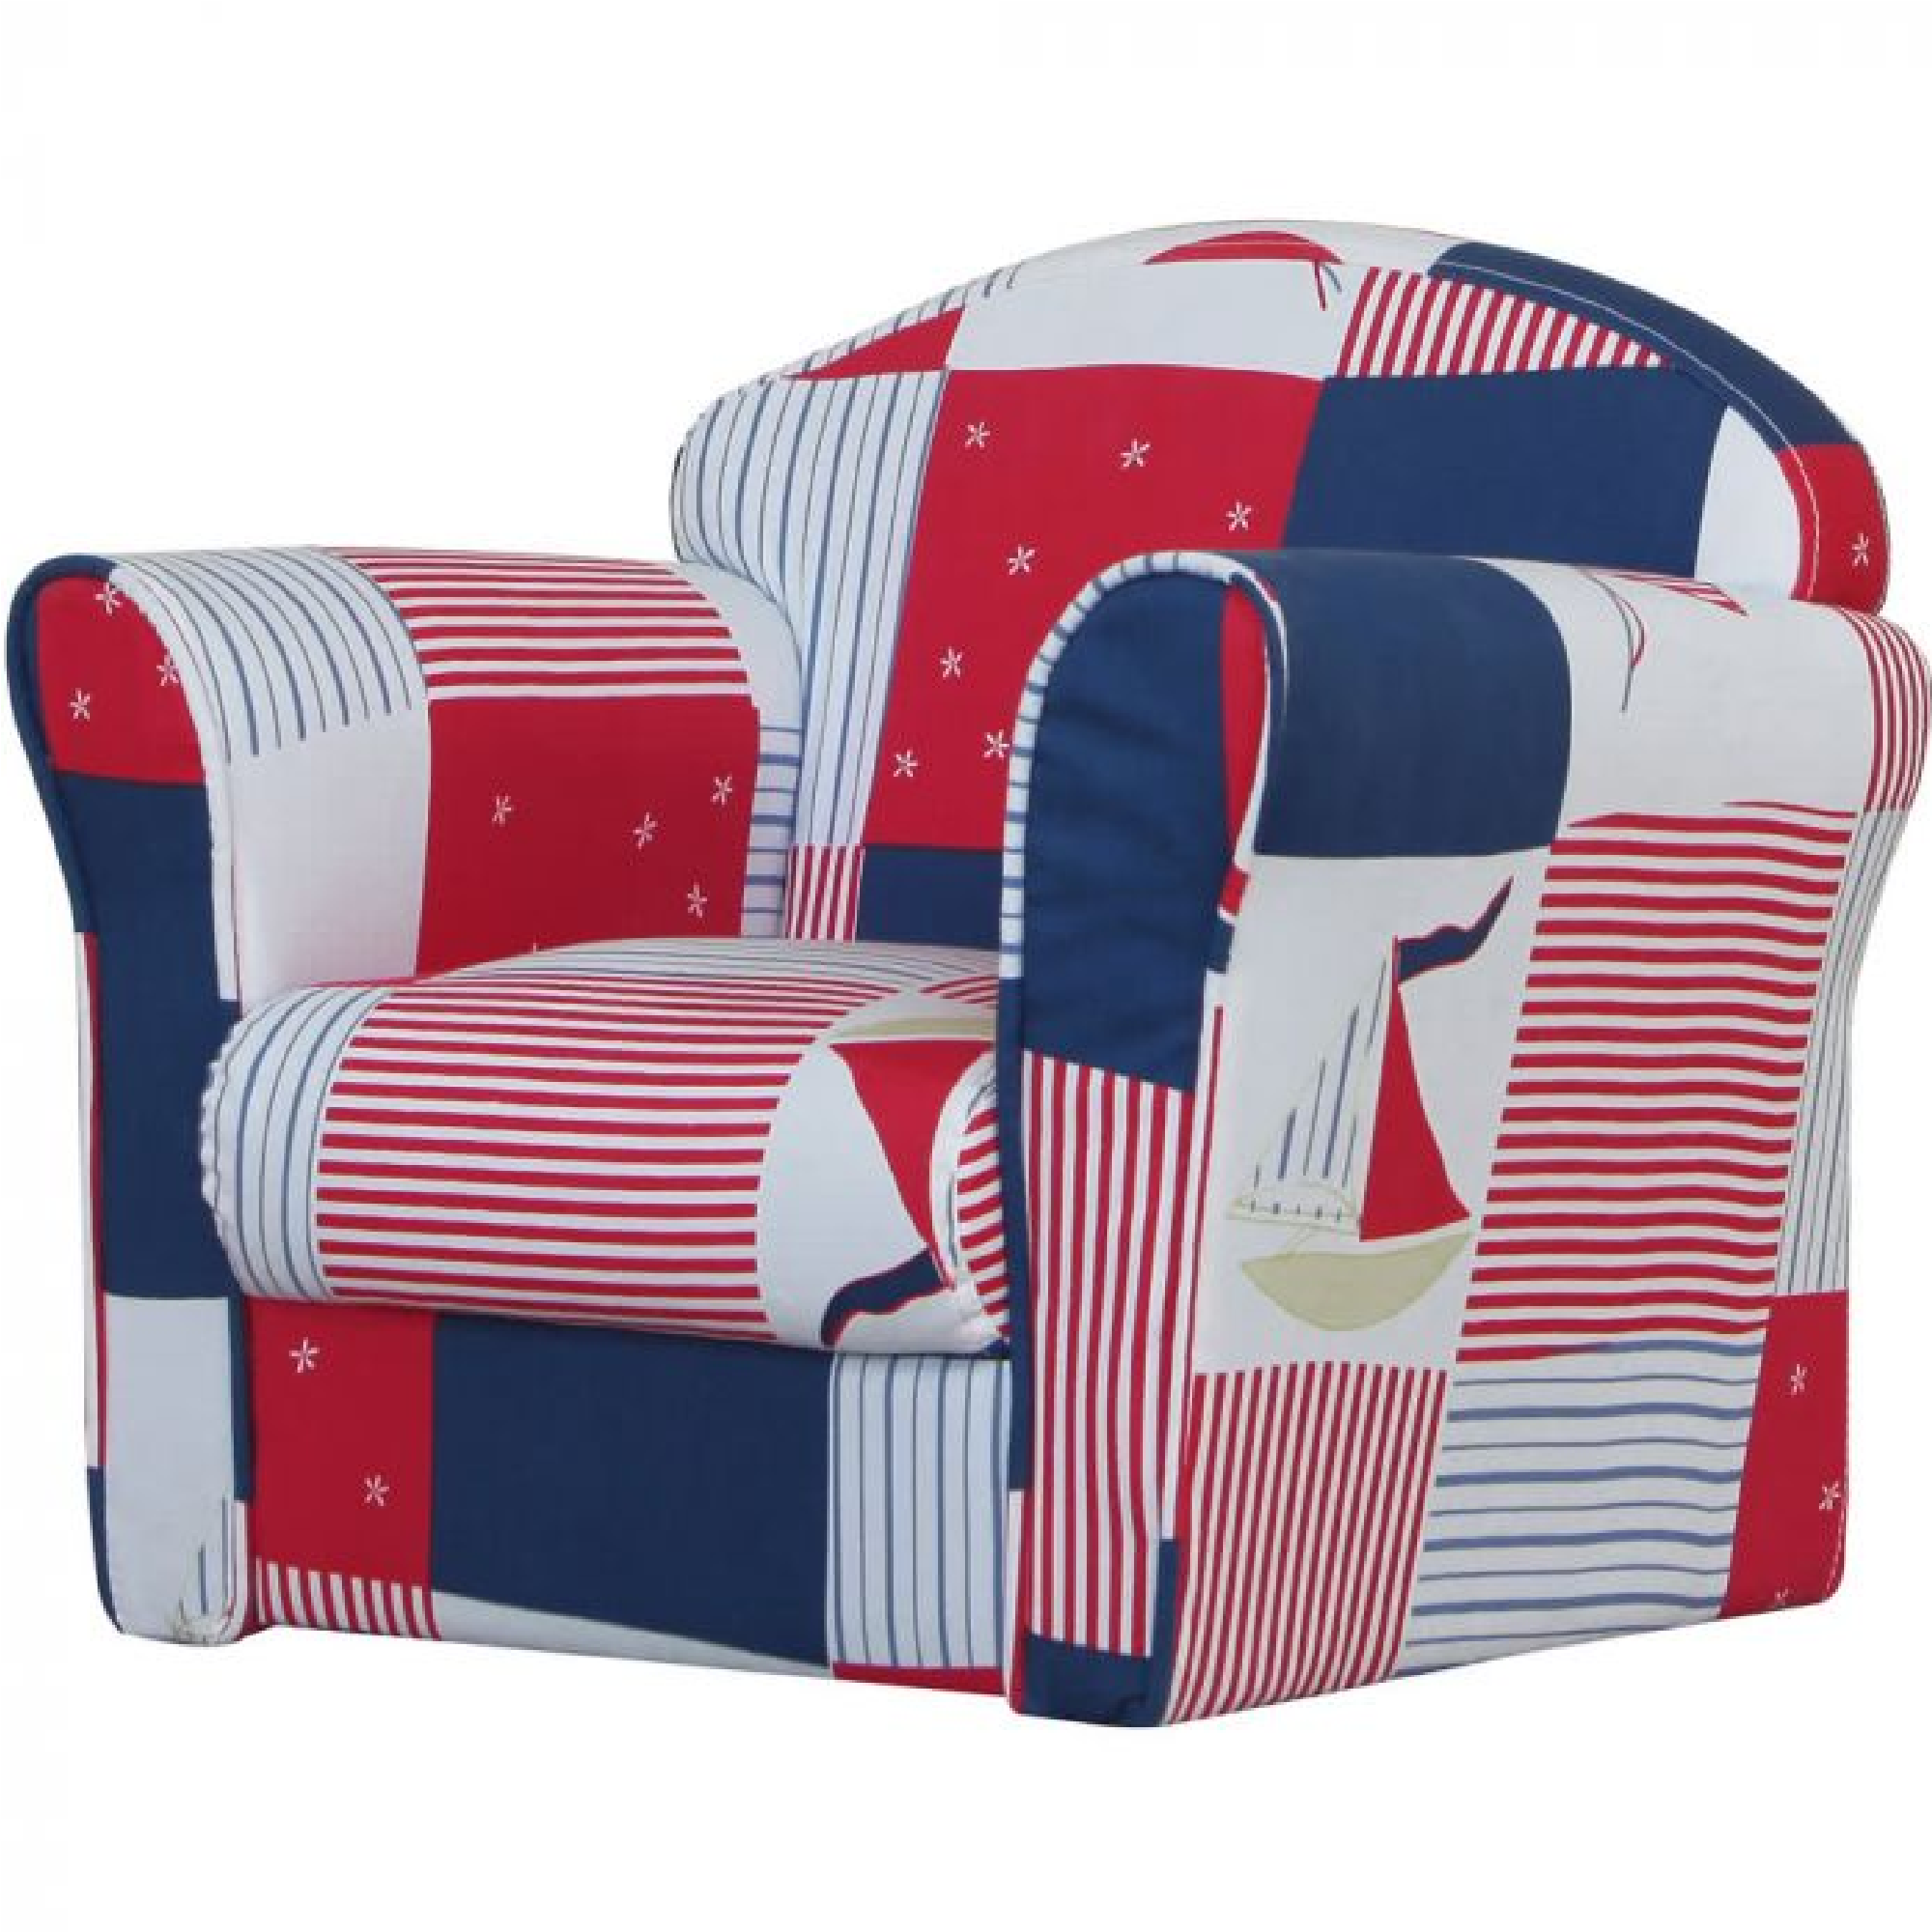 Kidsaw Blue Patchwork Mini Armchair – Smart Kid Store